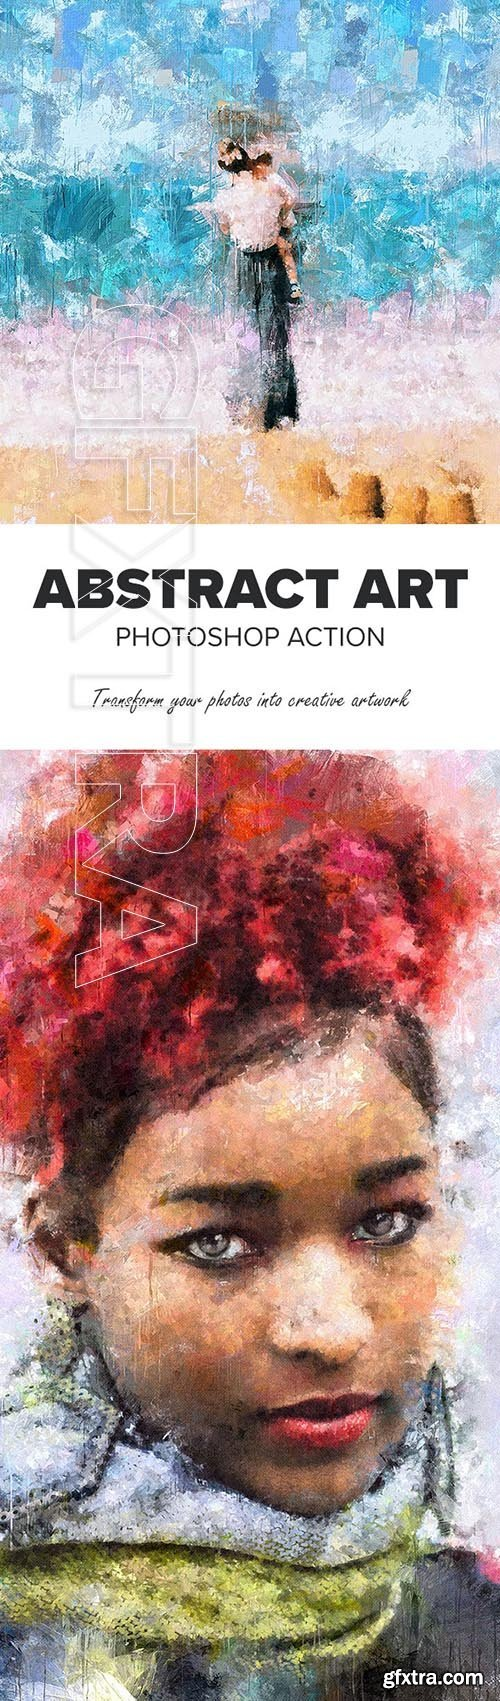 GraphicRiver - Abstract Art Photoshop Action 25712393